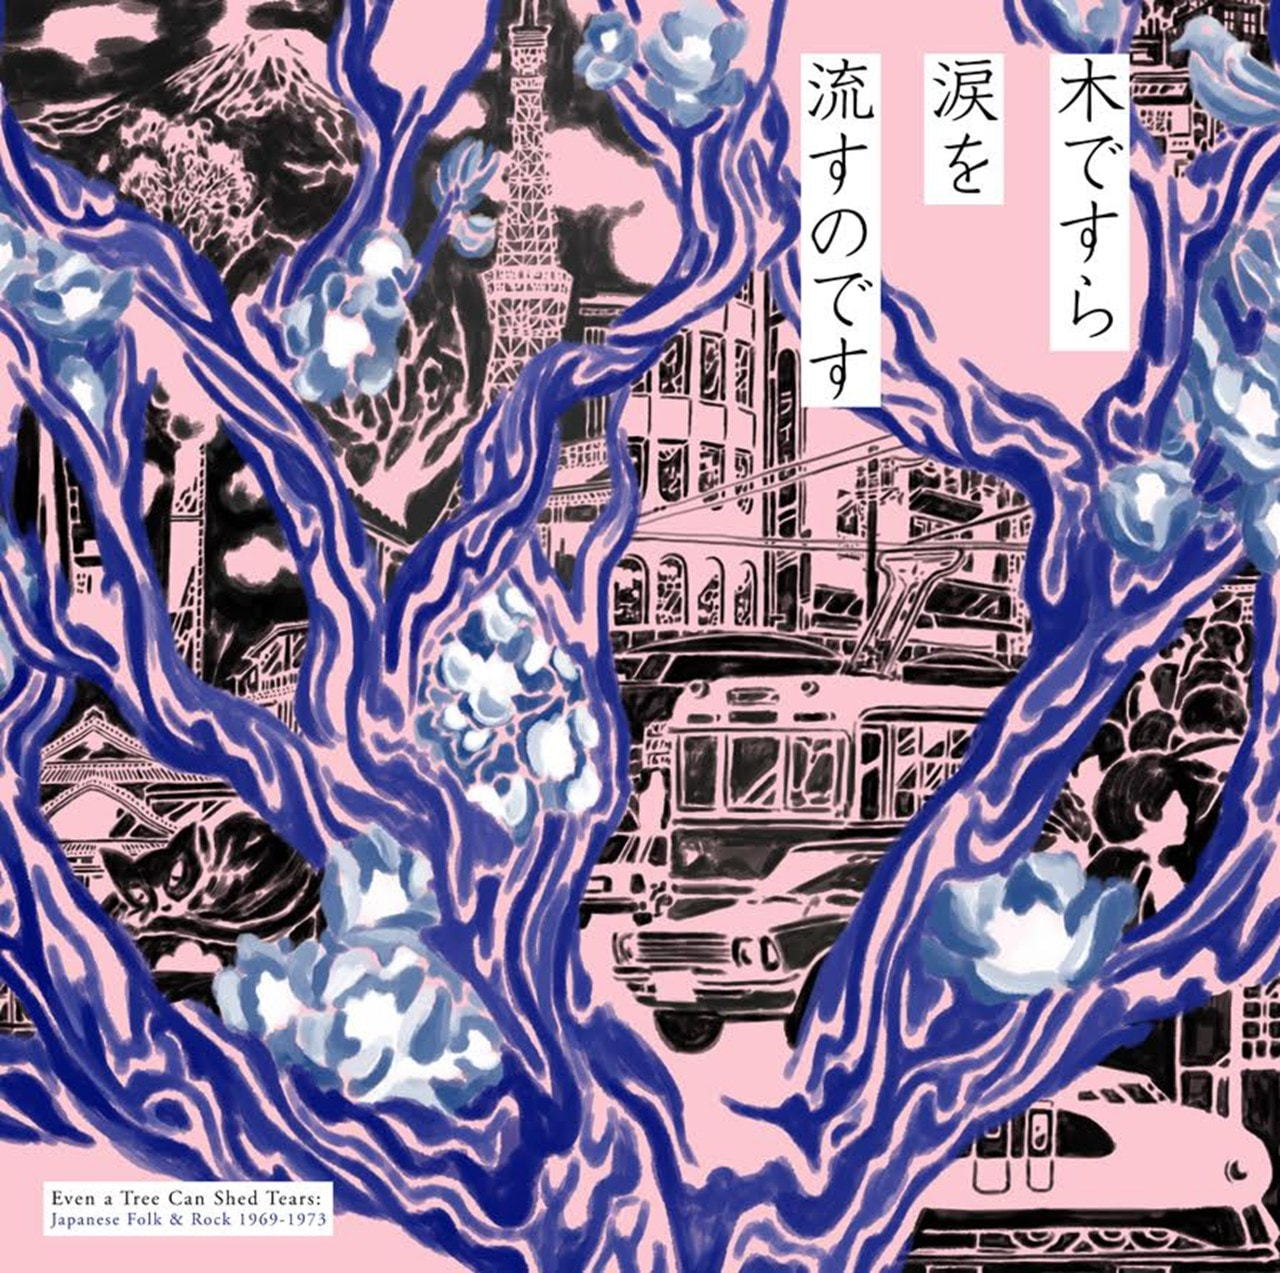 Even a Tree Can Shed Tears: Japanese Folk & Rock 1969-1973 - 1